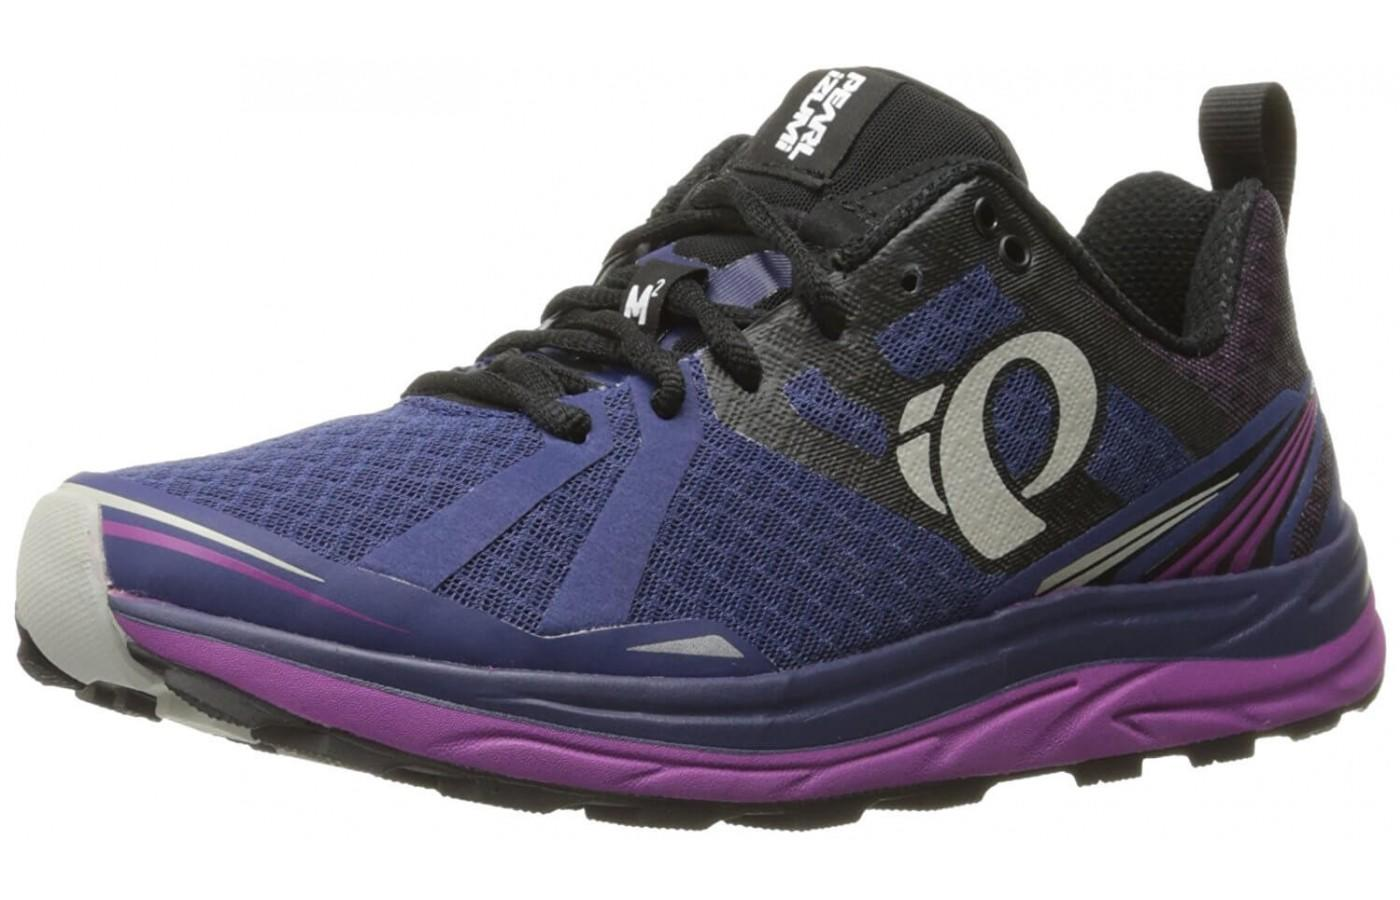 Pearl Izumi EM Trail M2 V3 features large brand logo on side of the shoe